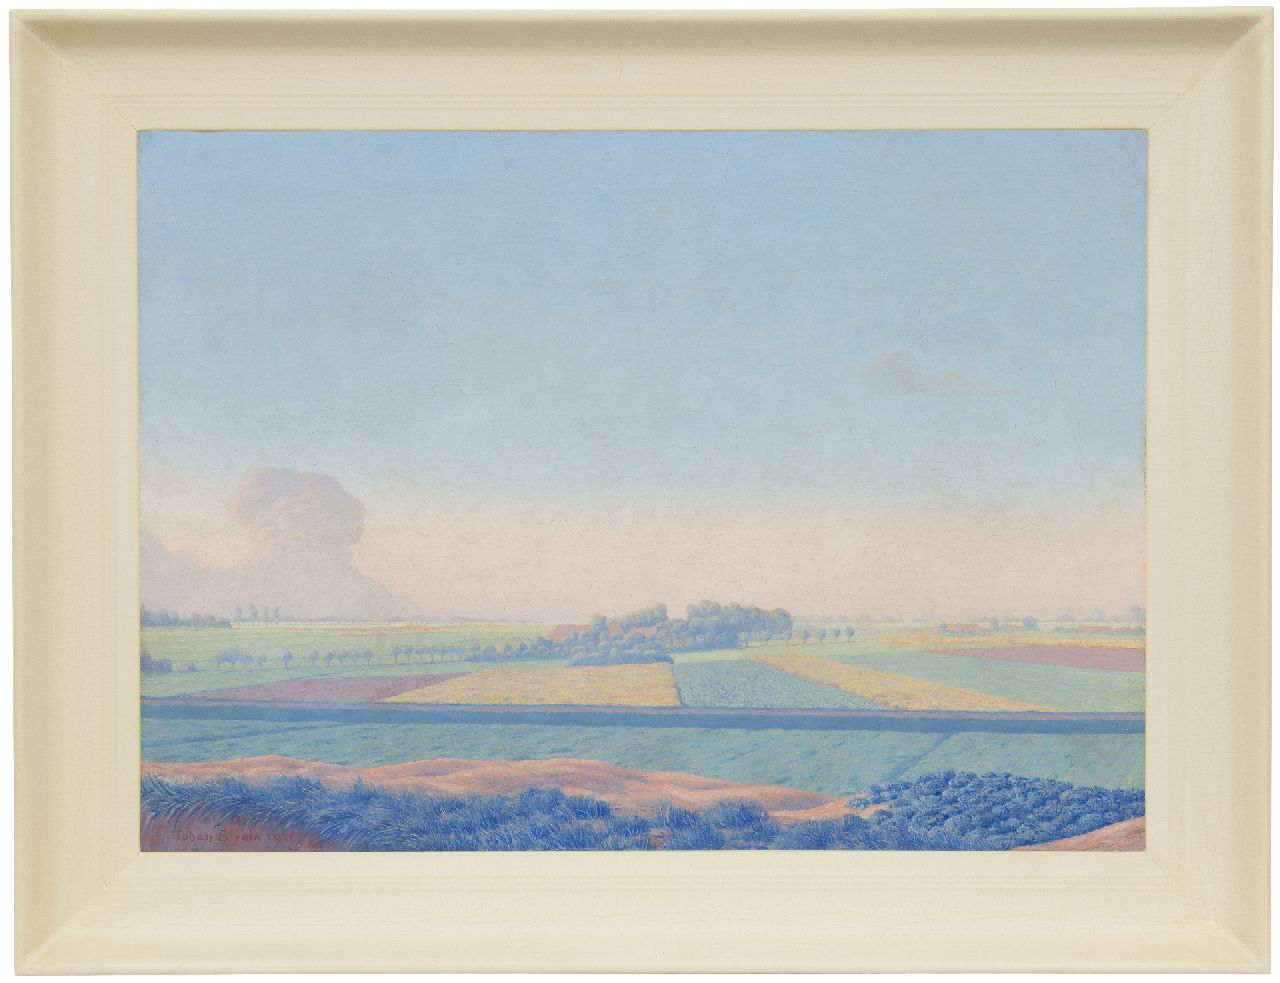 Birnie J.  | Johan Birnie | Paintings offered for sale | Bulb fields, oil on canvas 50.5 x 70.5 cm, signed l.l. and dated 1921